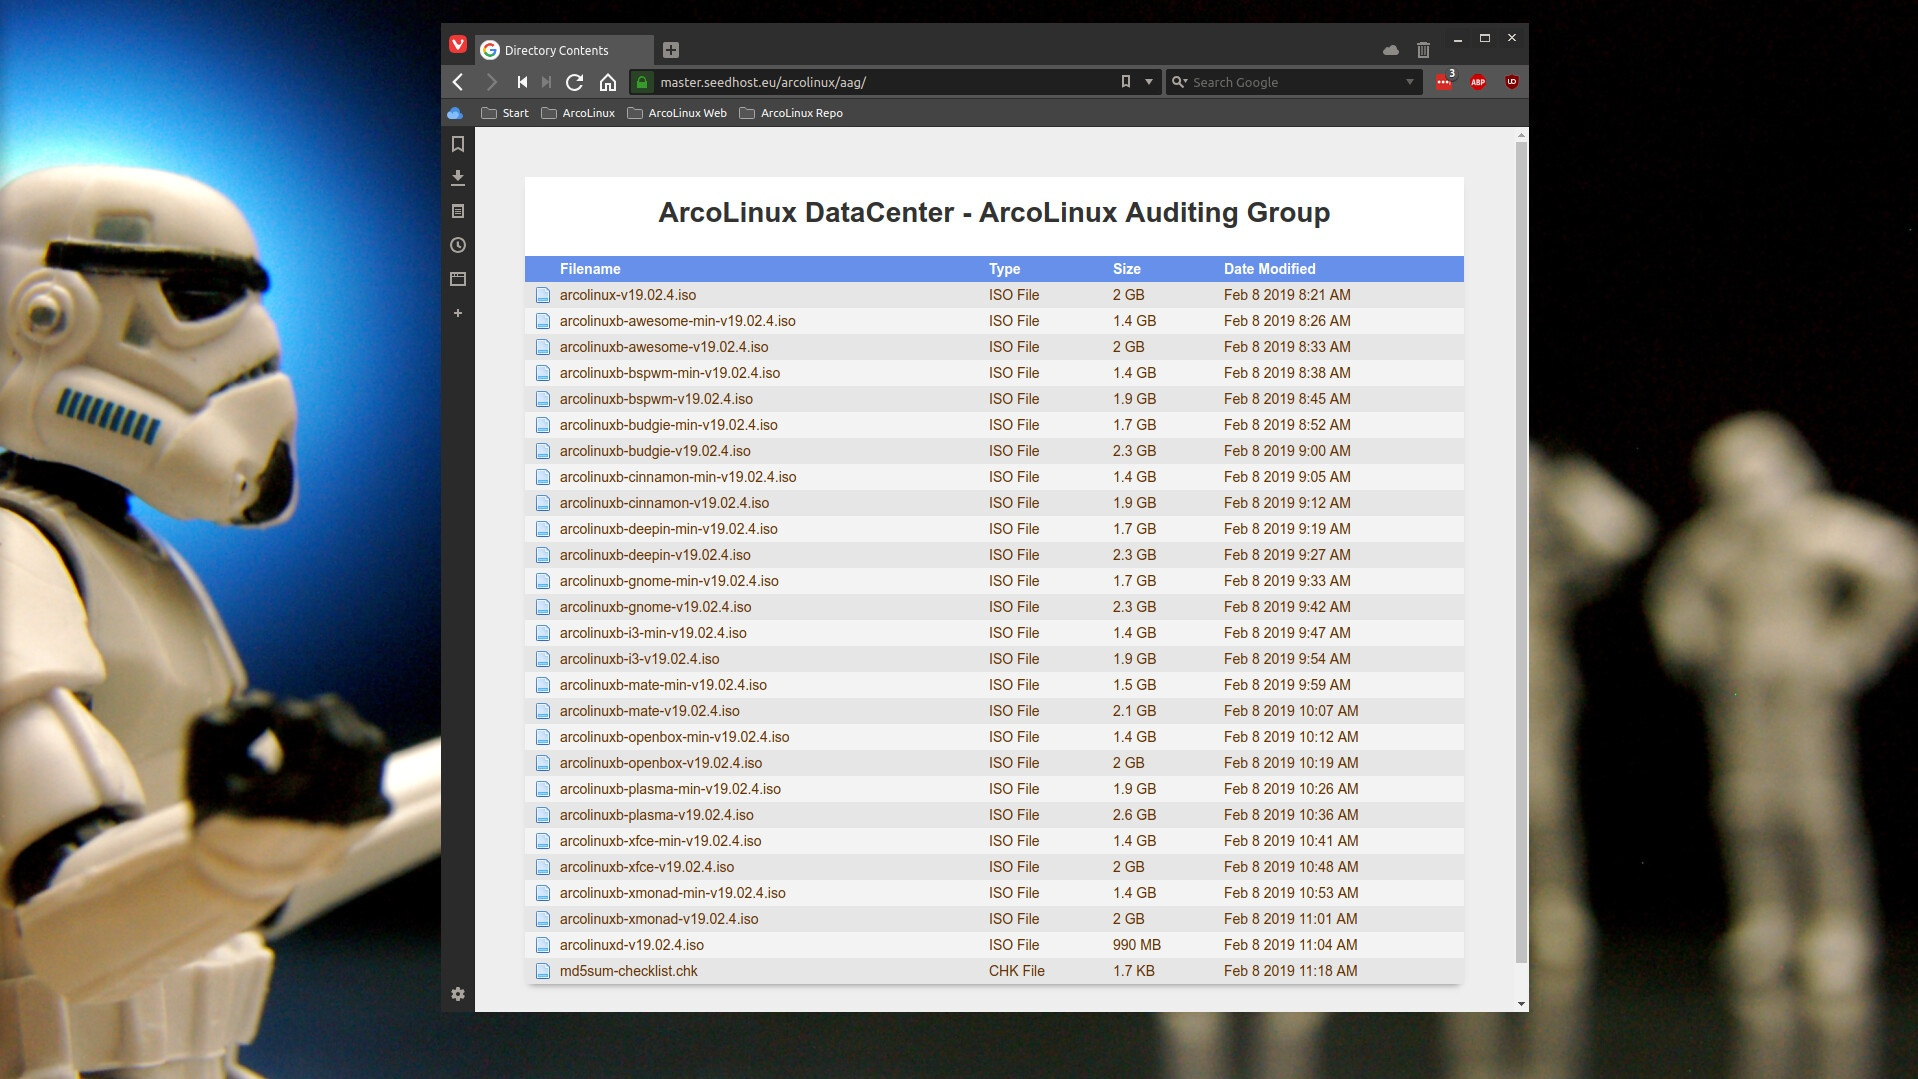 ArcoLinux starts with AAG or ArcoLinux Auditing Group